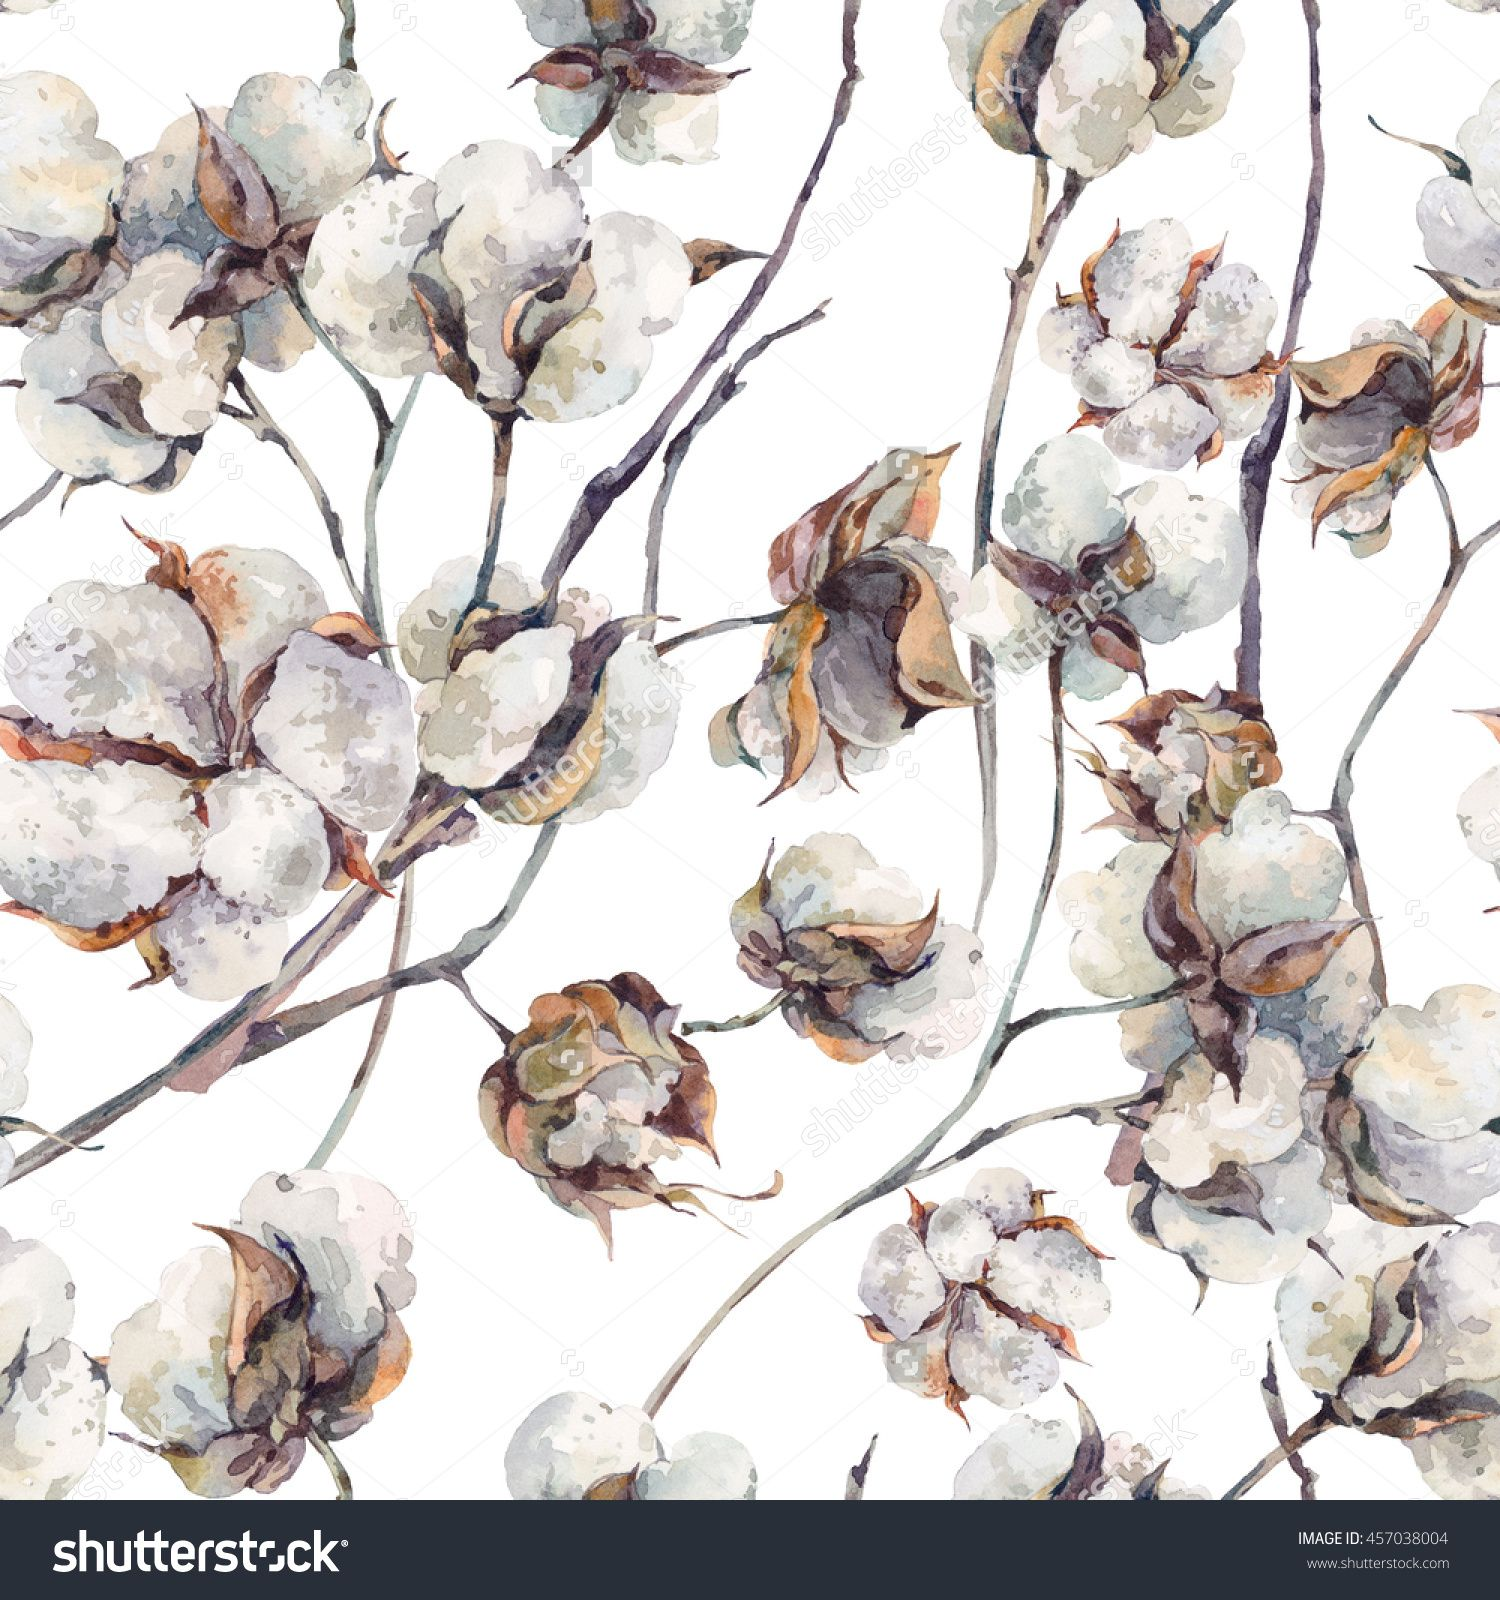 Watercolor vintage background with twigs and cotton flowers 1500x1600